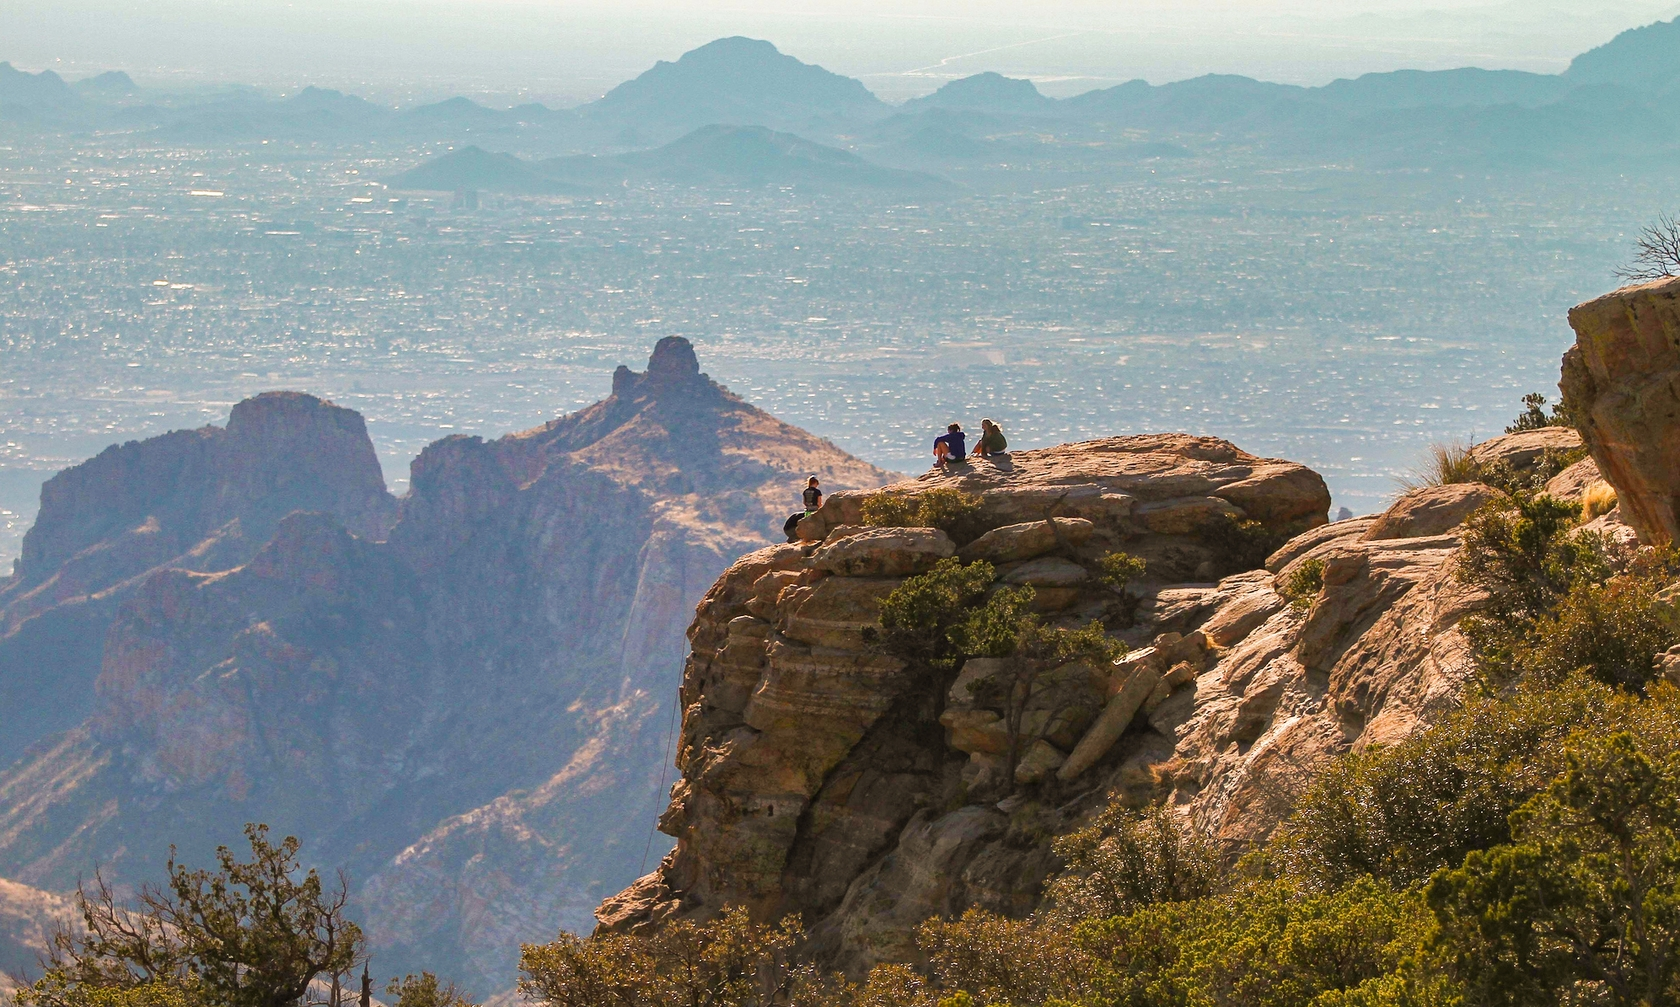 Vacation rentals in Tucson